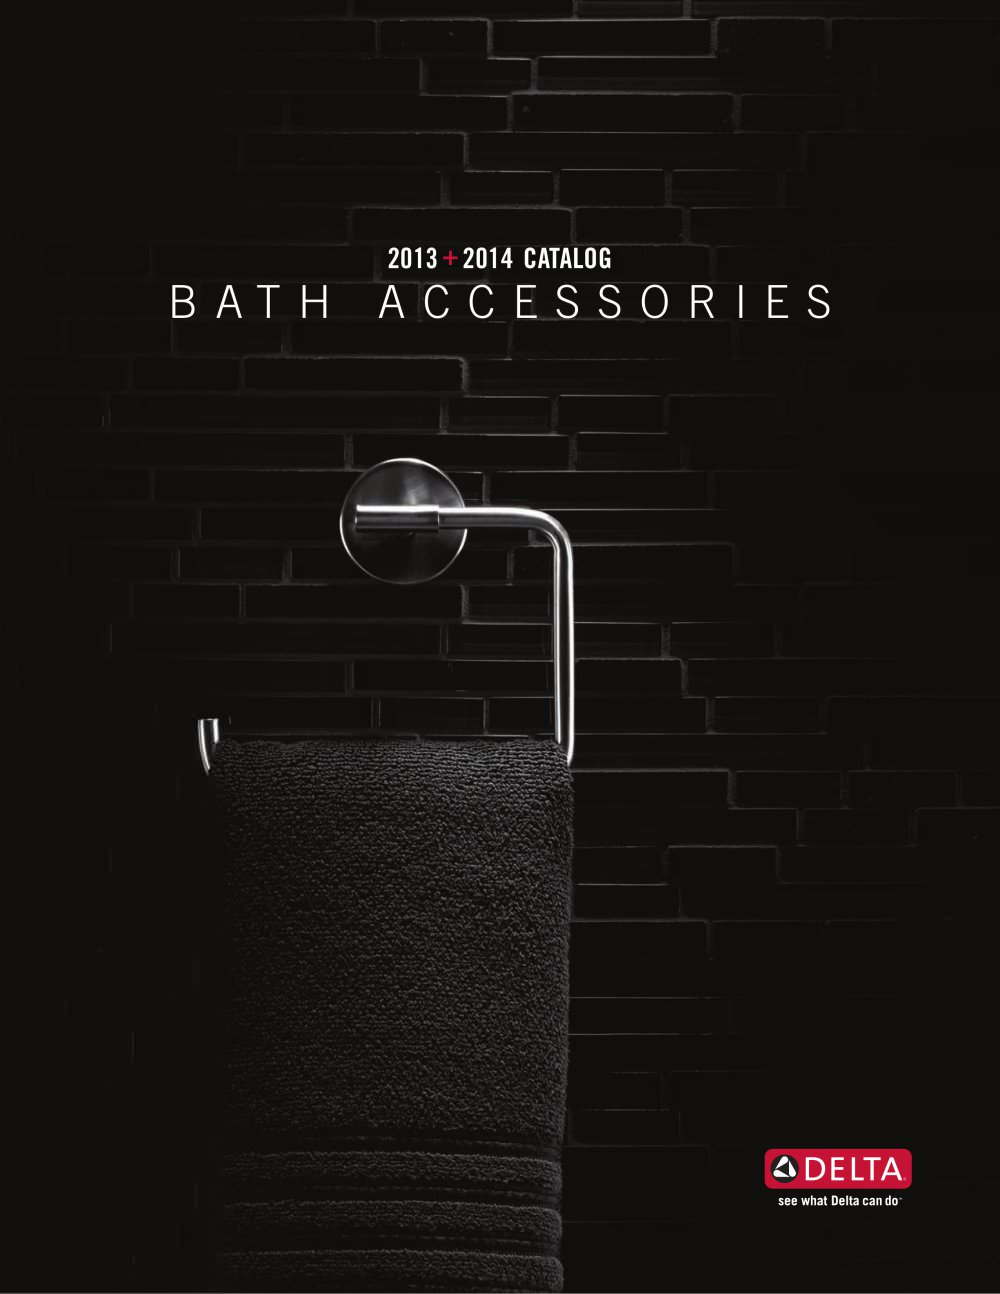 2013 2014 bath accessories catalog dl 1811 1 48 pages - Bathroom Accessories Delta